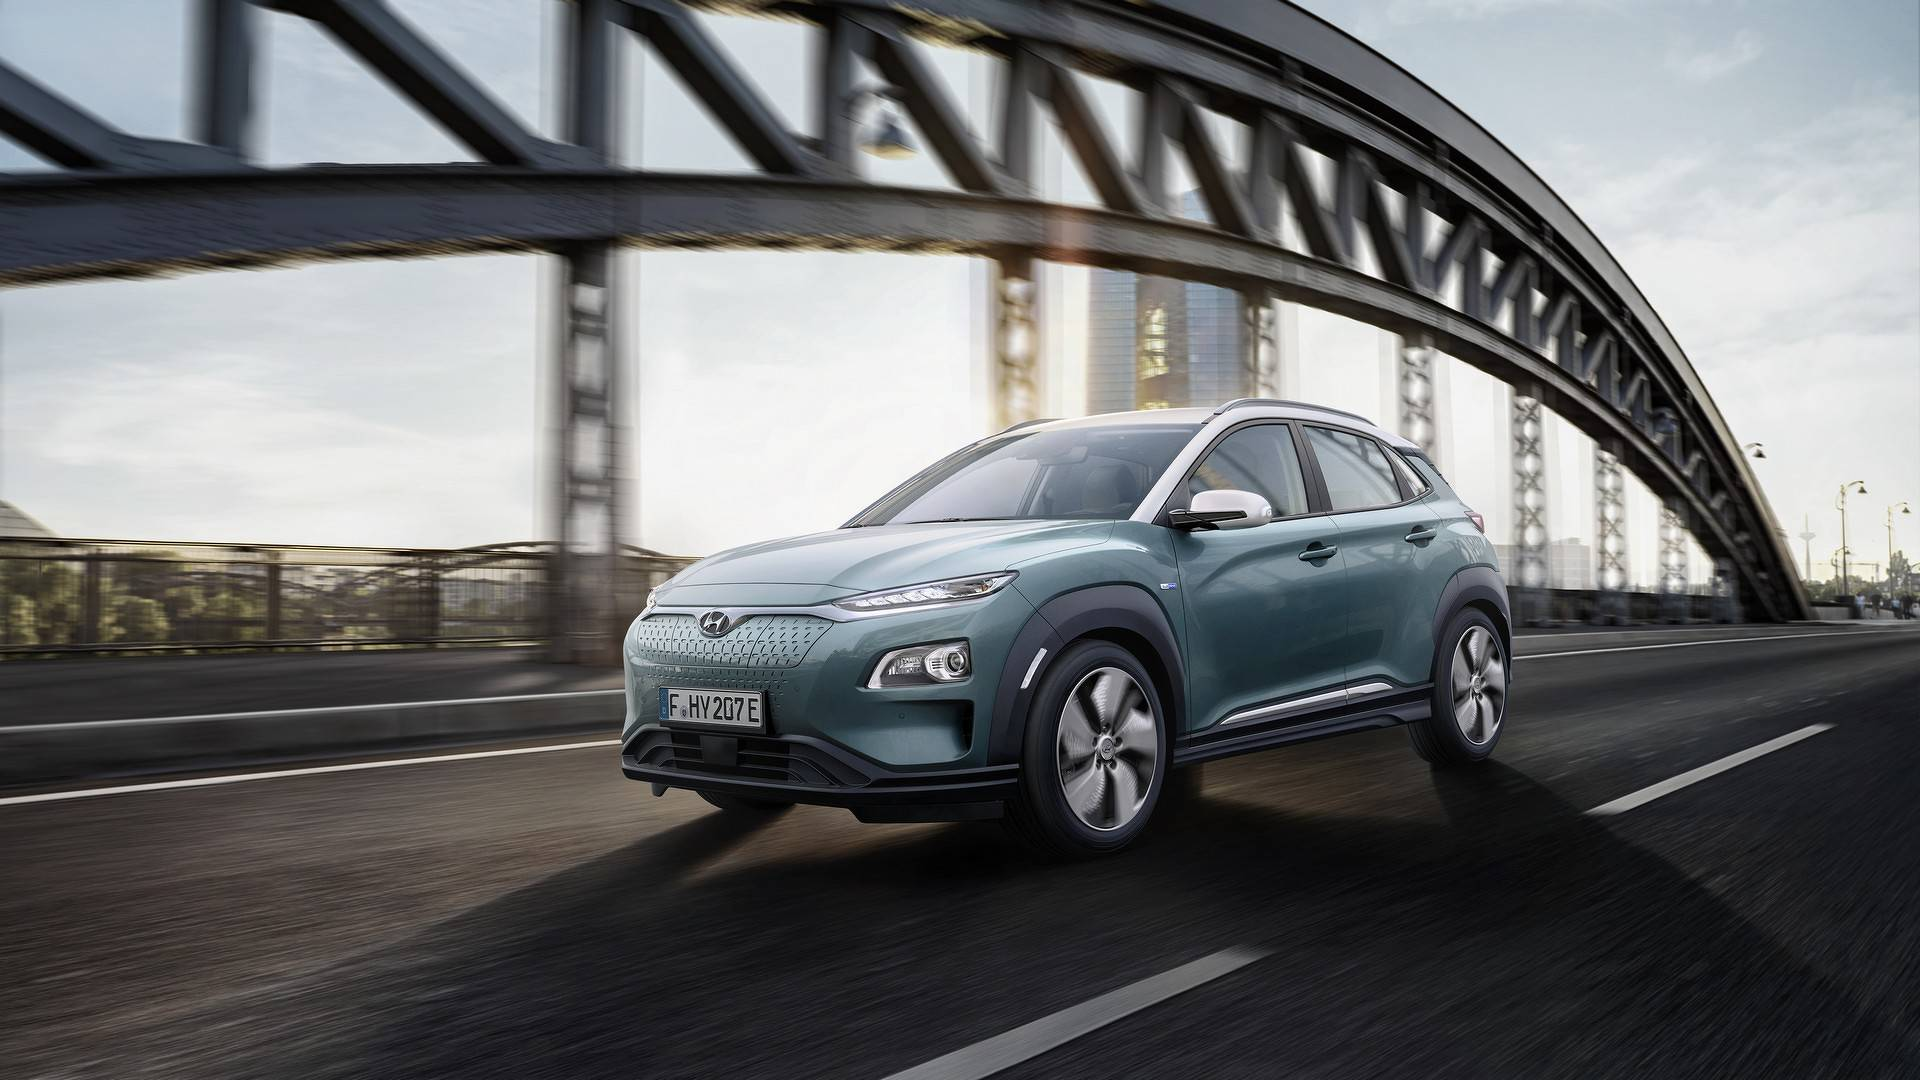 Hyundai Kona Electric u Ženevi (galerija i video)